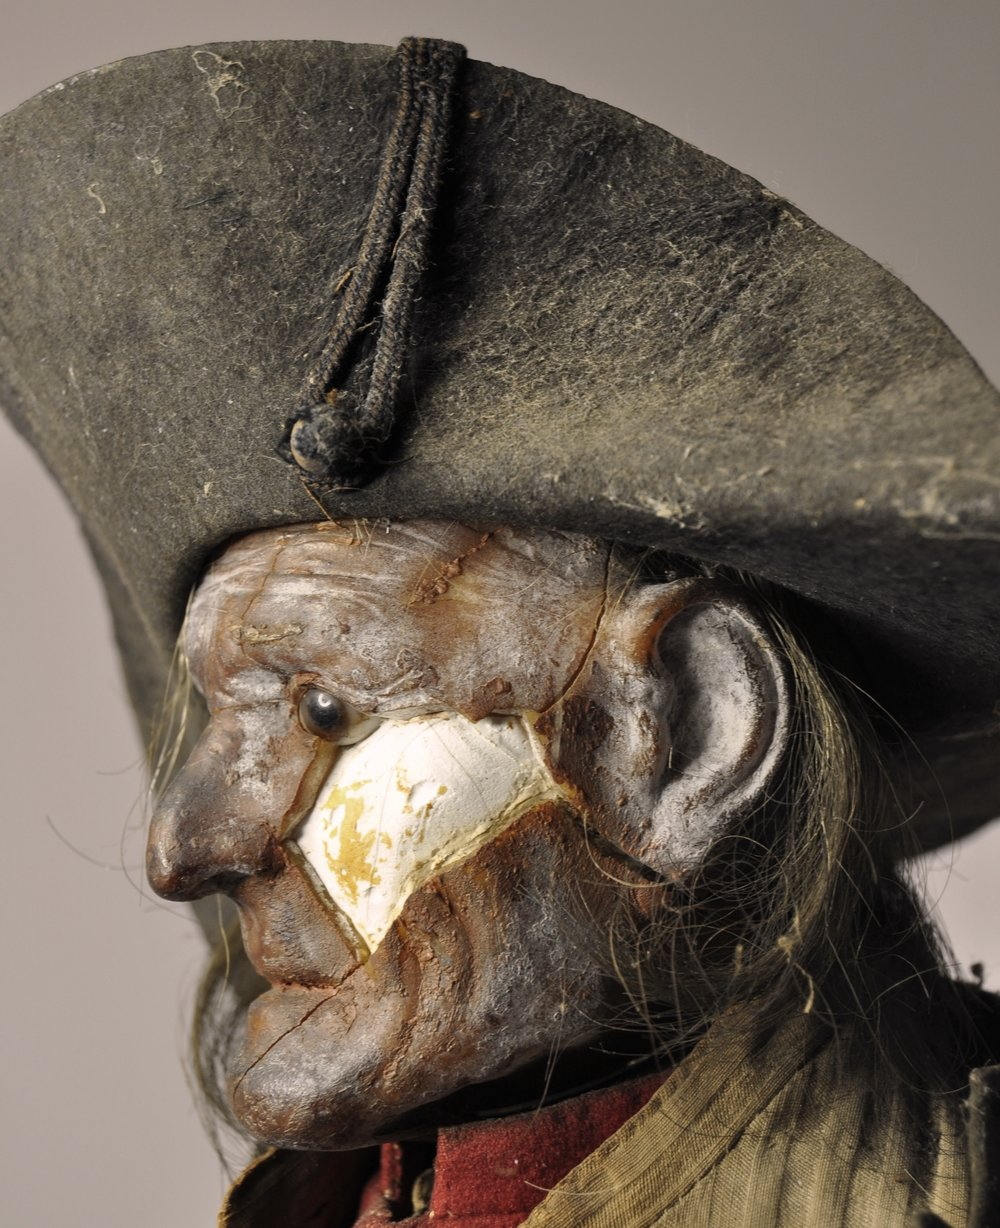 Detail of the head and hat, before conservation treatment